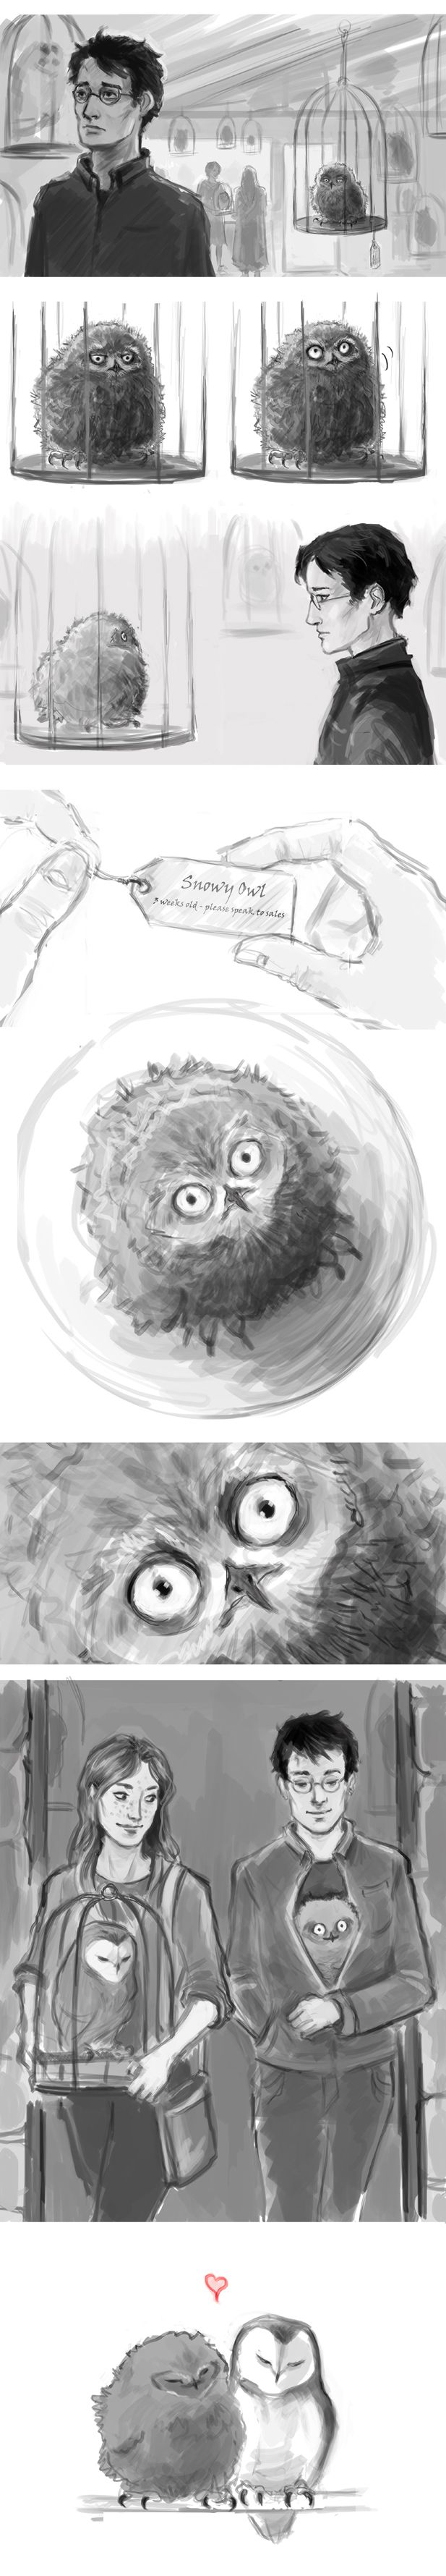 Finding Hedwig's Successor. HP: Owl Shop by ehay on DeviantArt